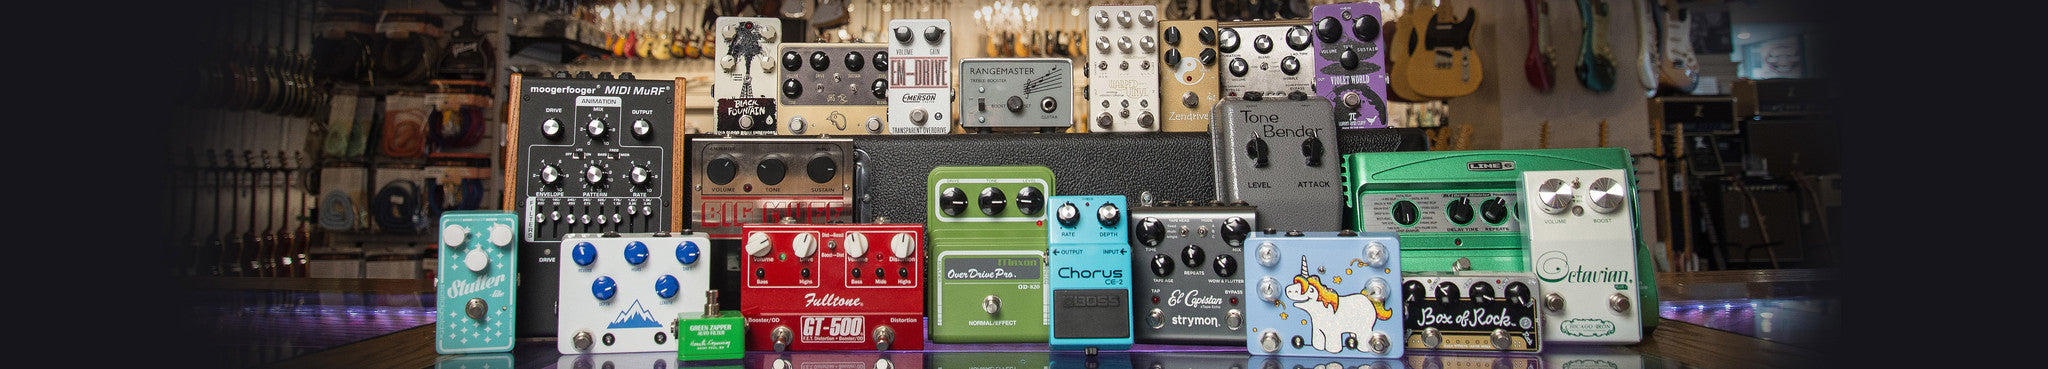 Guitar Effects Pedals & More